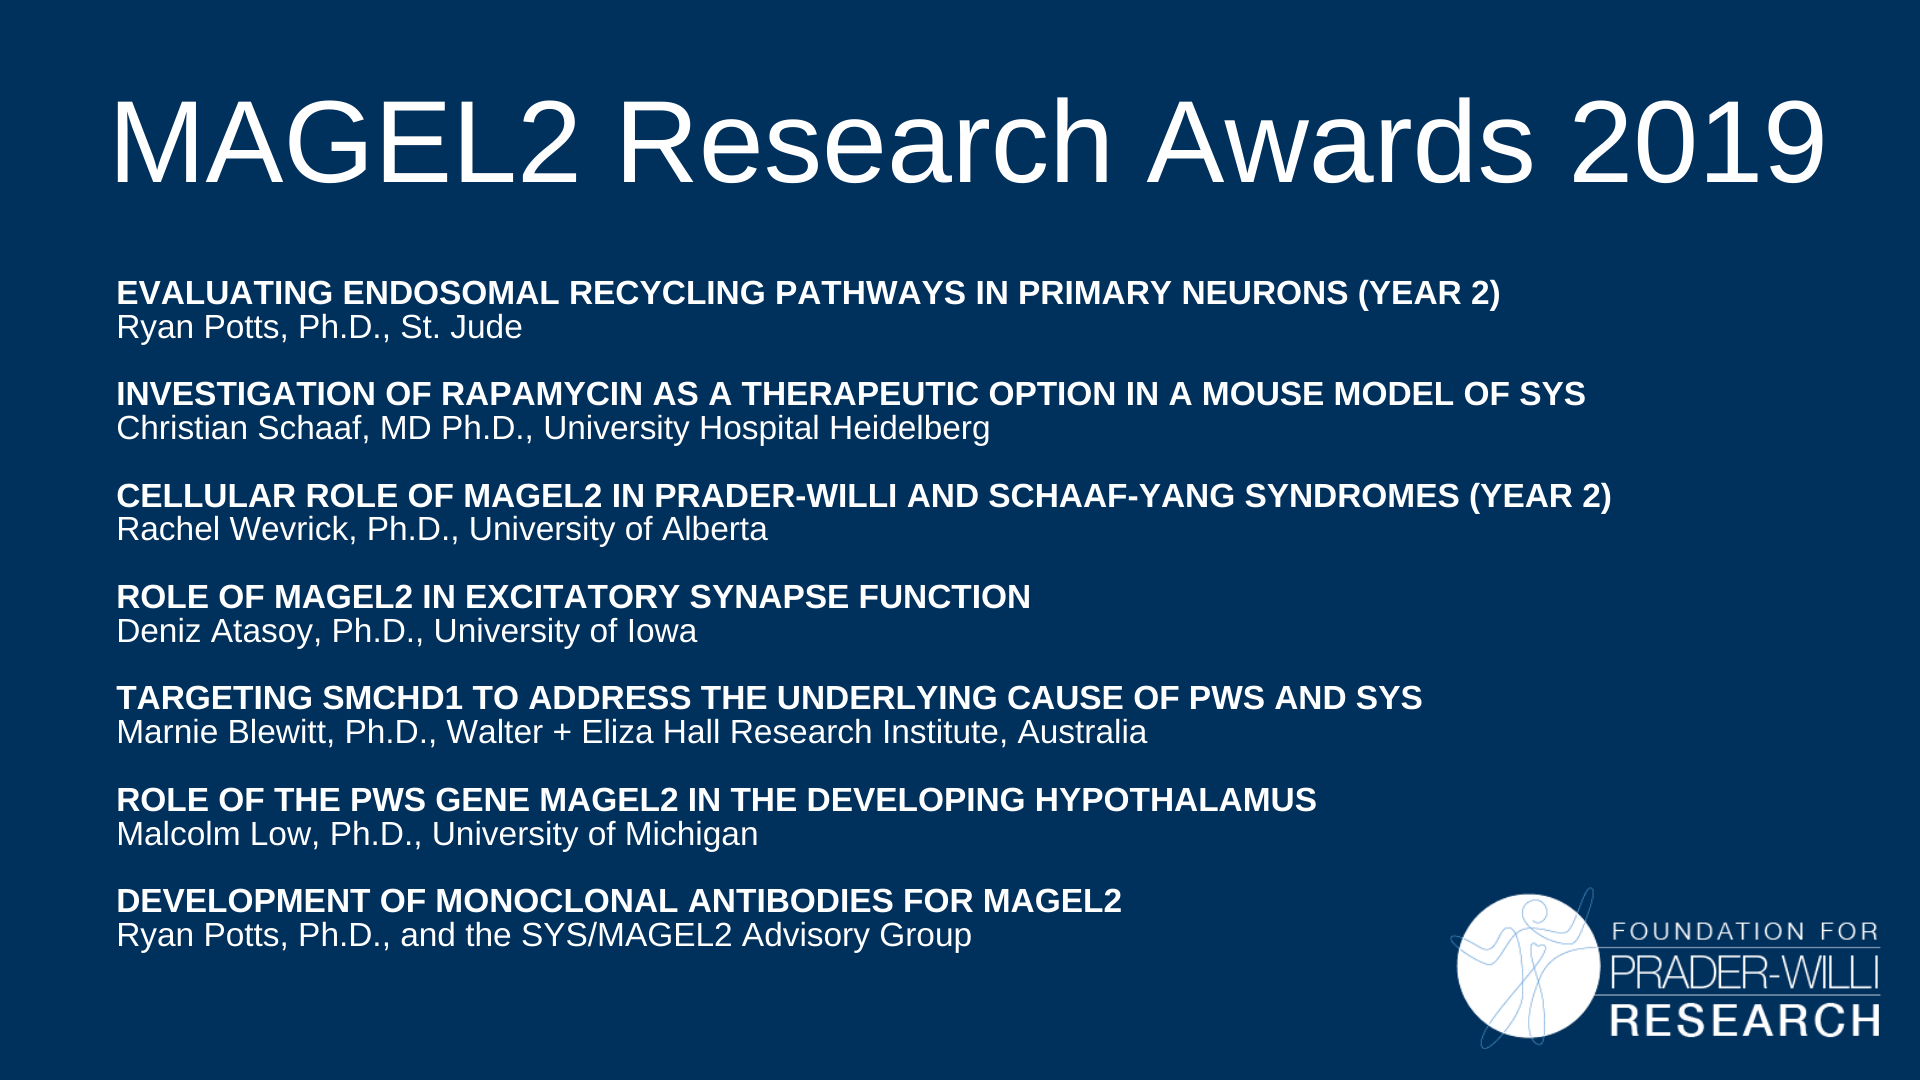 2019 MAGEL2 Research Awards